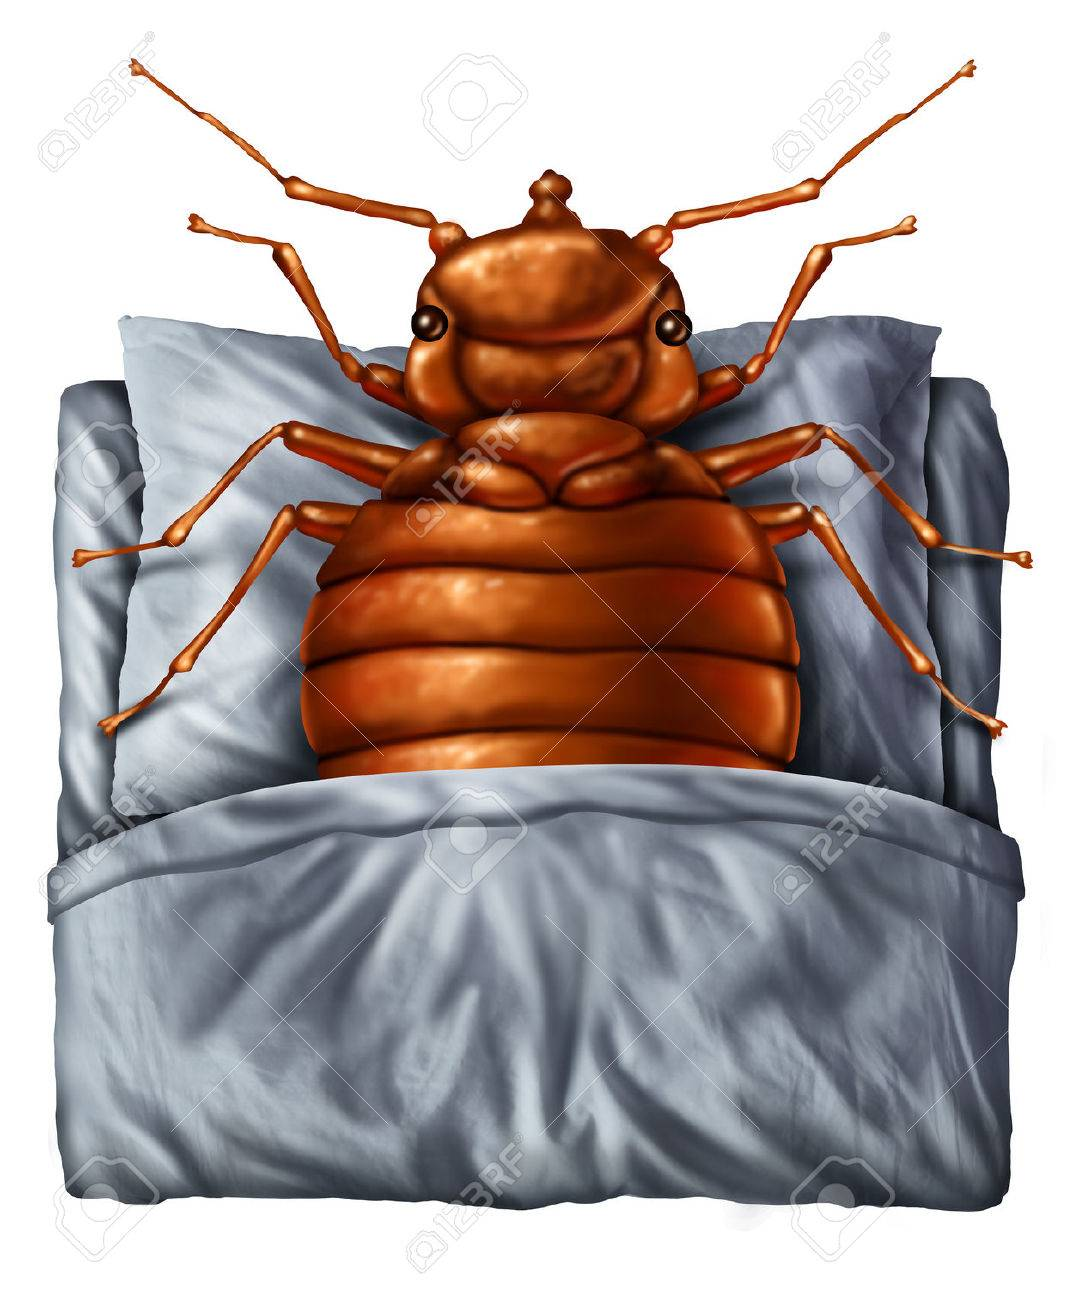 Bedbug Or Bed Bug Concept As A Parasitic Insect Pest Resting Stock